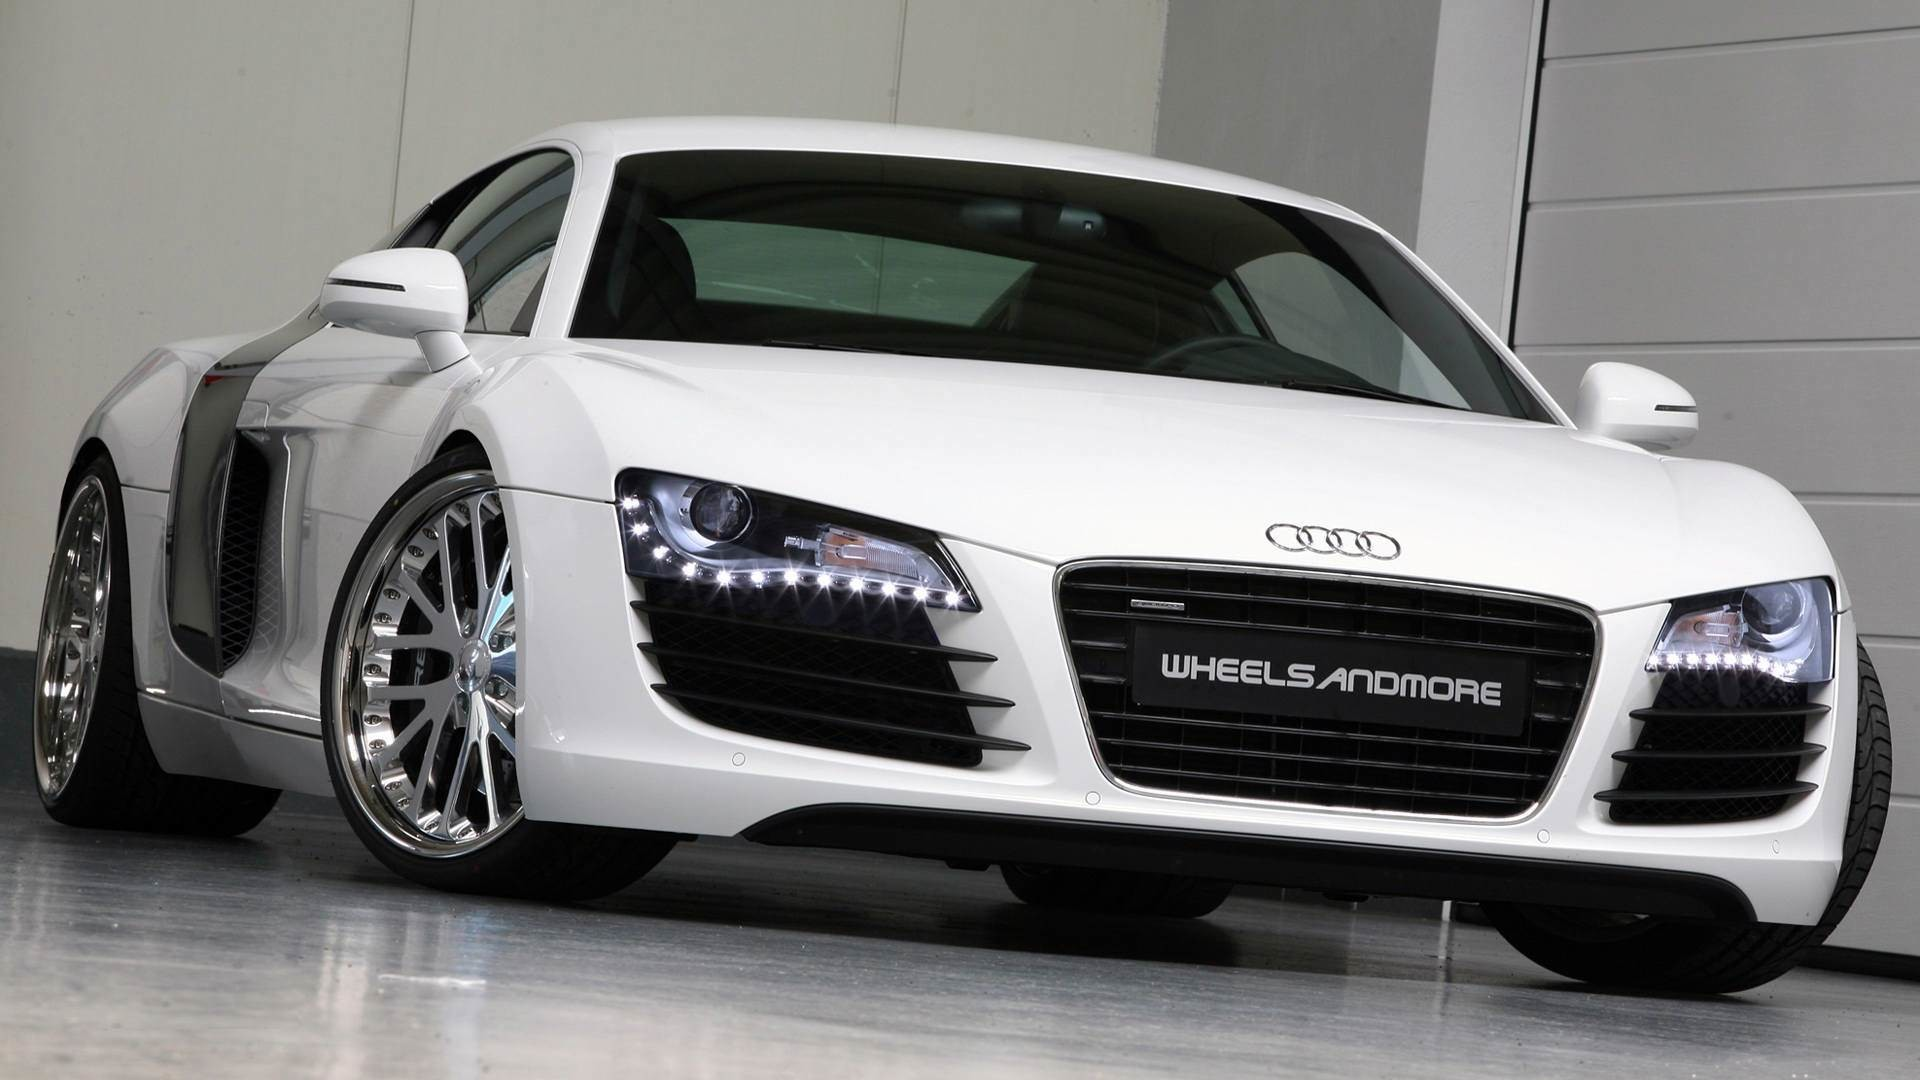 1920x1080 Cars Wallpaper Page 6 Dcervin Audi R8 Hd Wallpapers HD